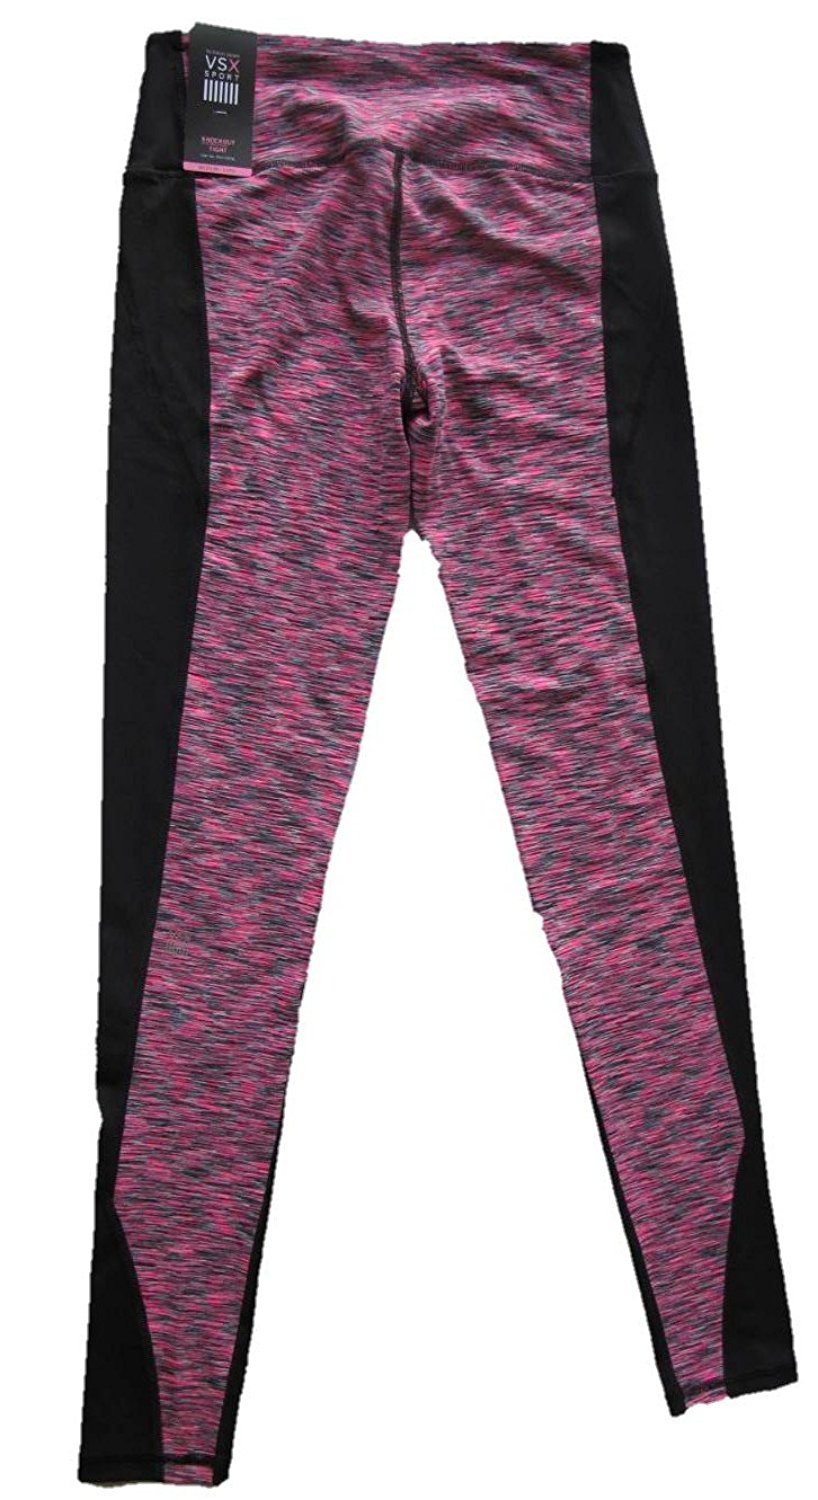 e8c6db15db Get Quotations · Victoria's Secret Sport VSX Knockout Tight Yoga pant Pink  Marl Black